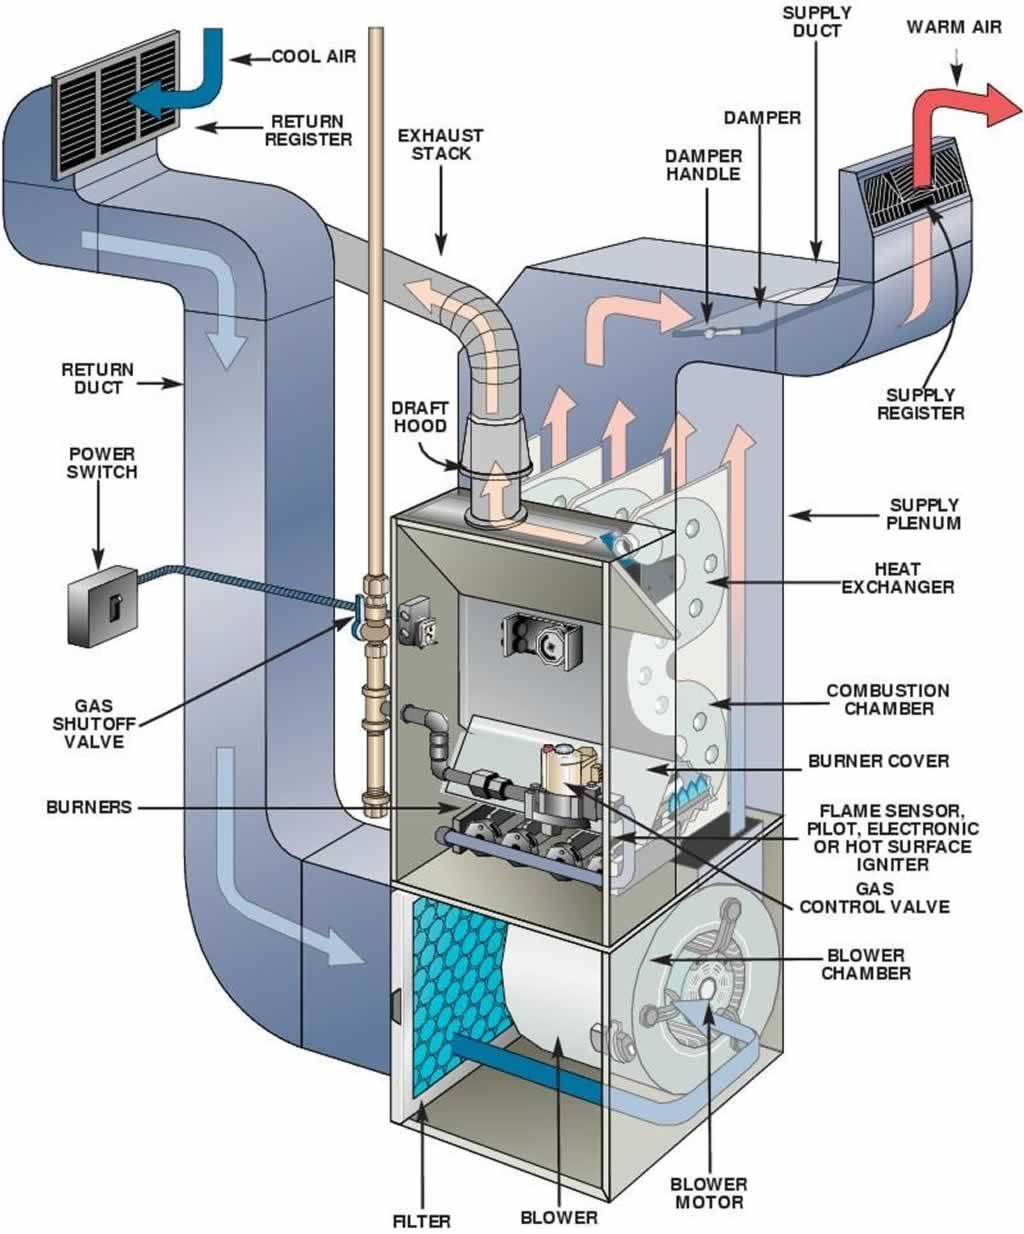 5 ultimate facts you need to know about furnaces furnace diagram [ 1024 x 1234 Pixel ]